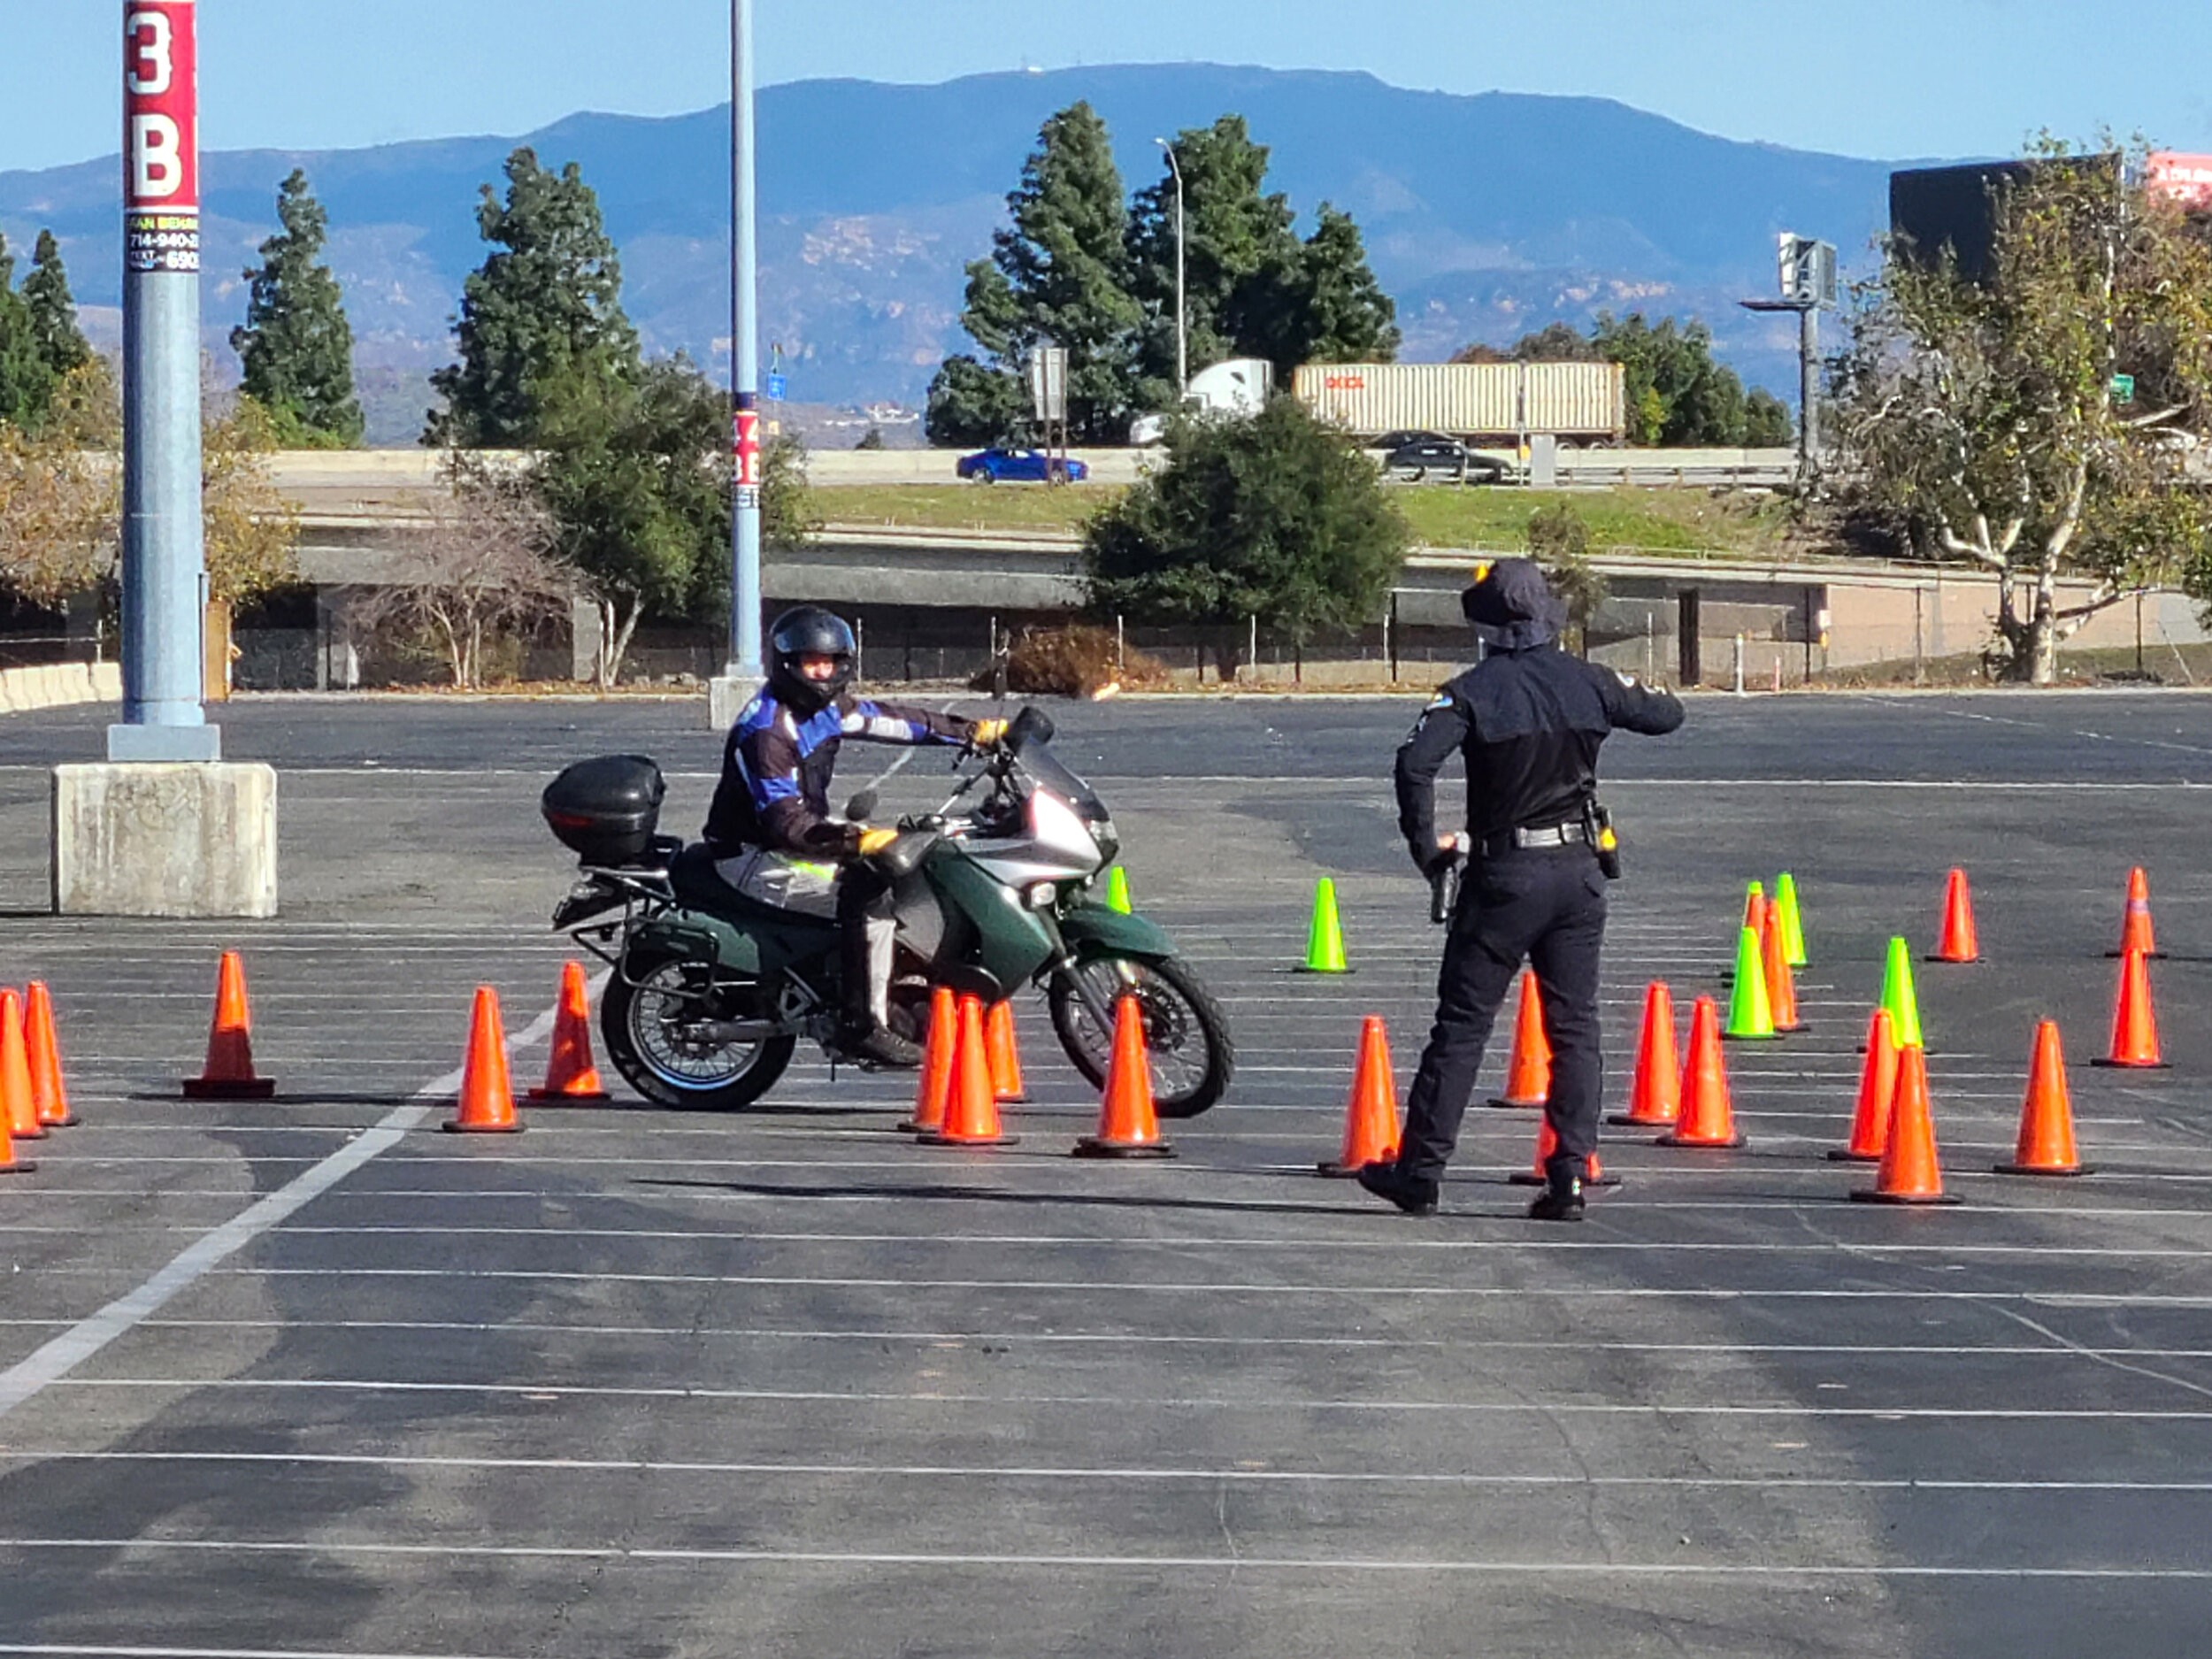 Motorcycle rider in parking lot with traffic cones